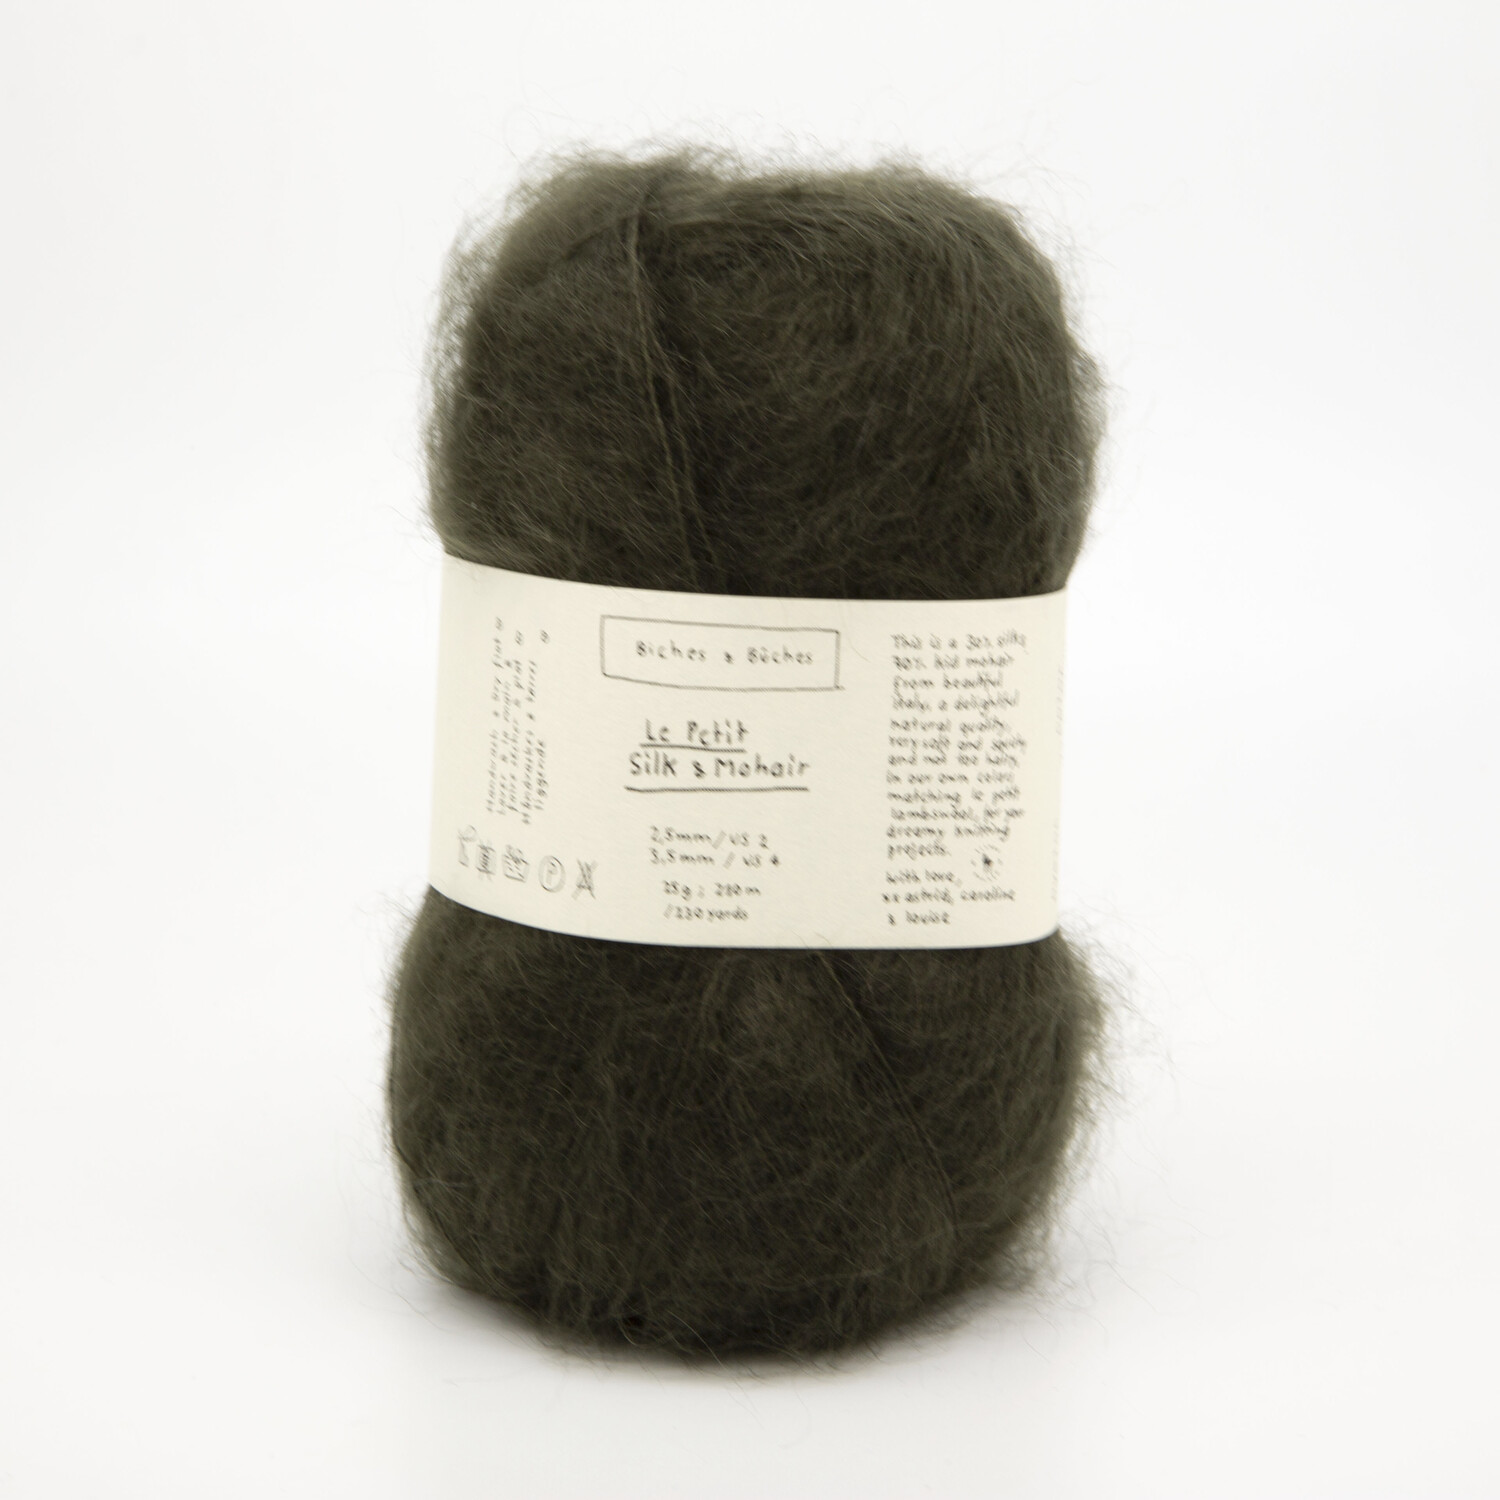 silk & mohair dark blue green тёмный зелёный